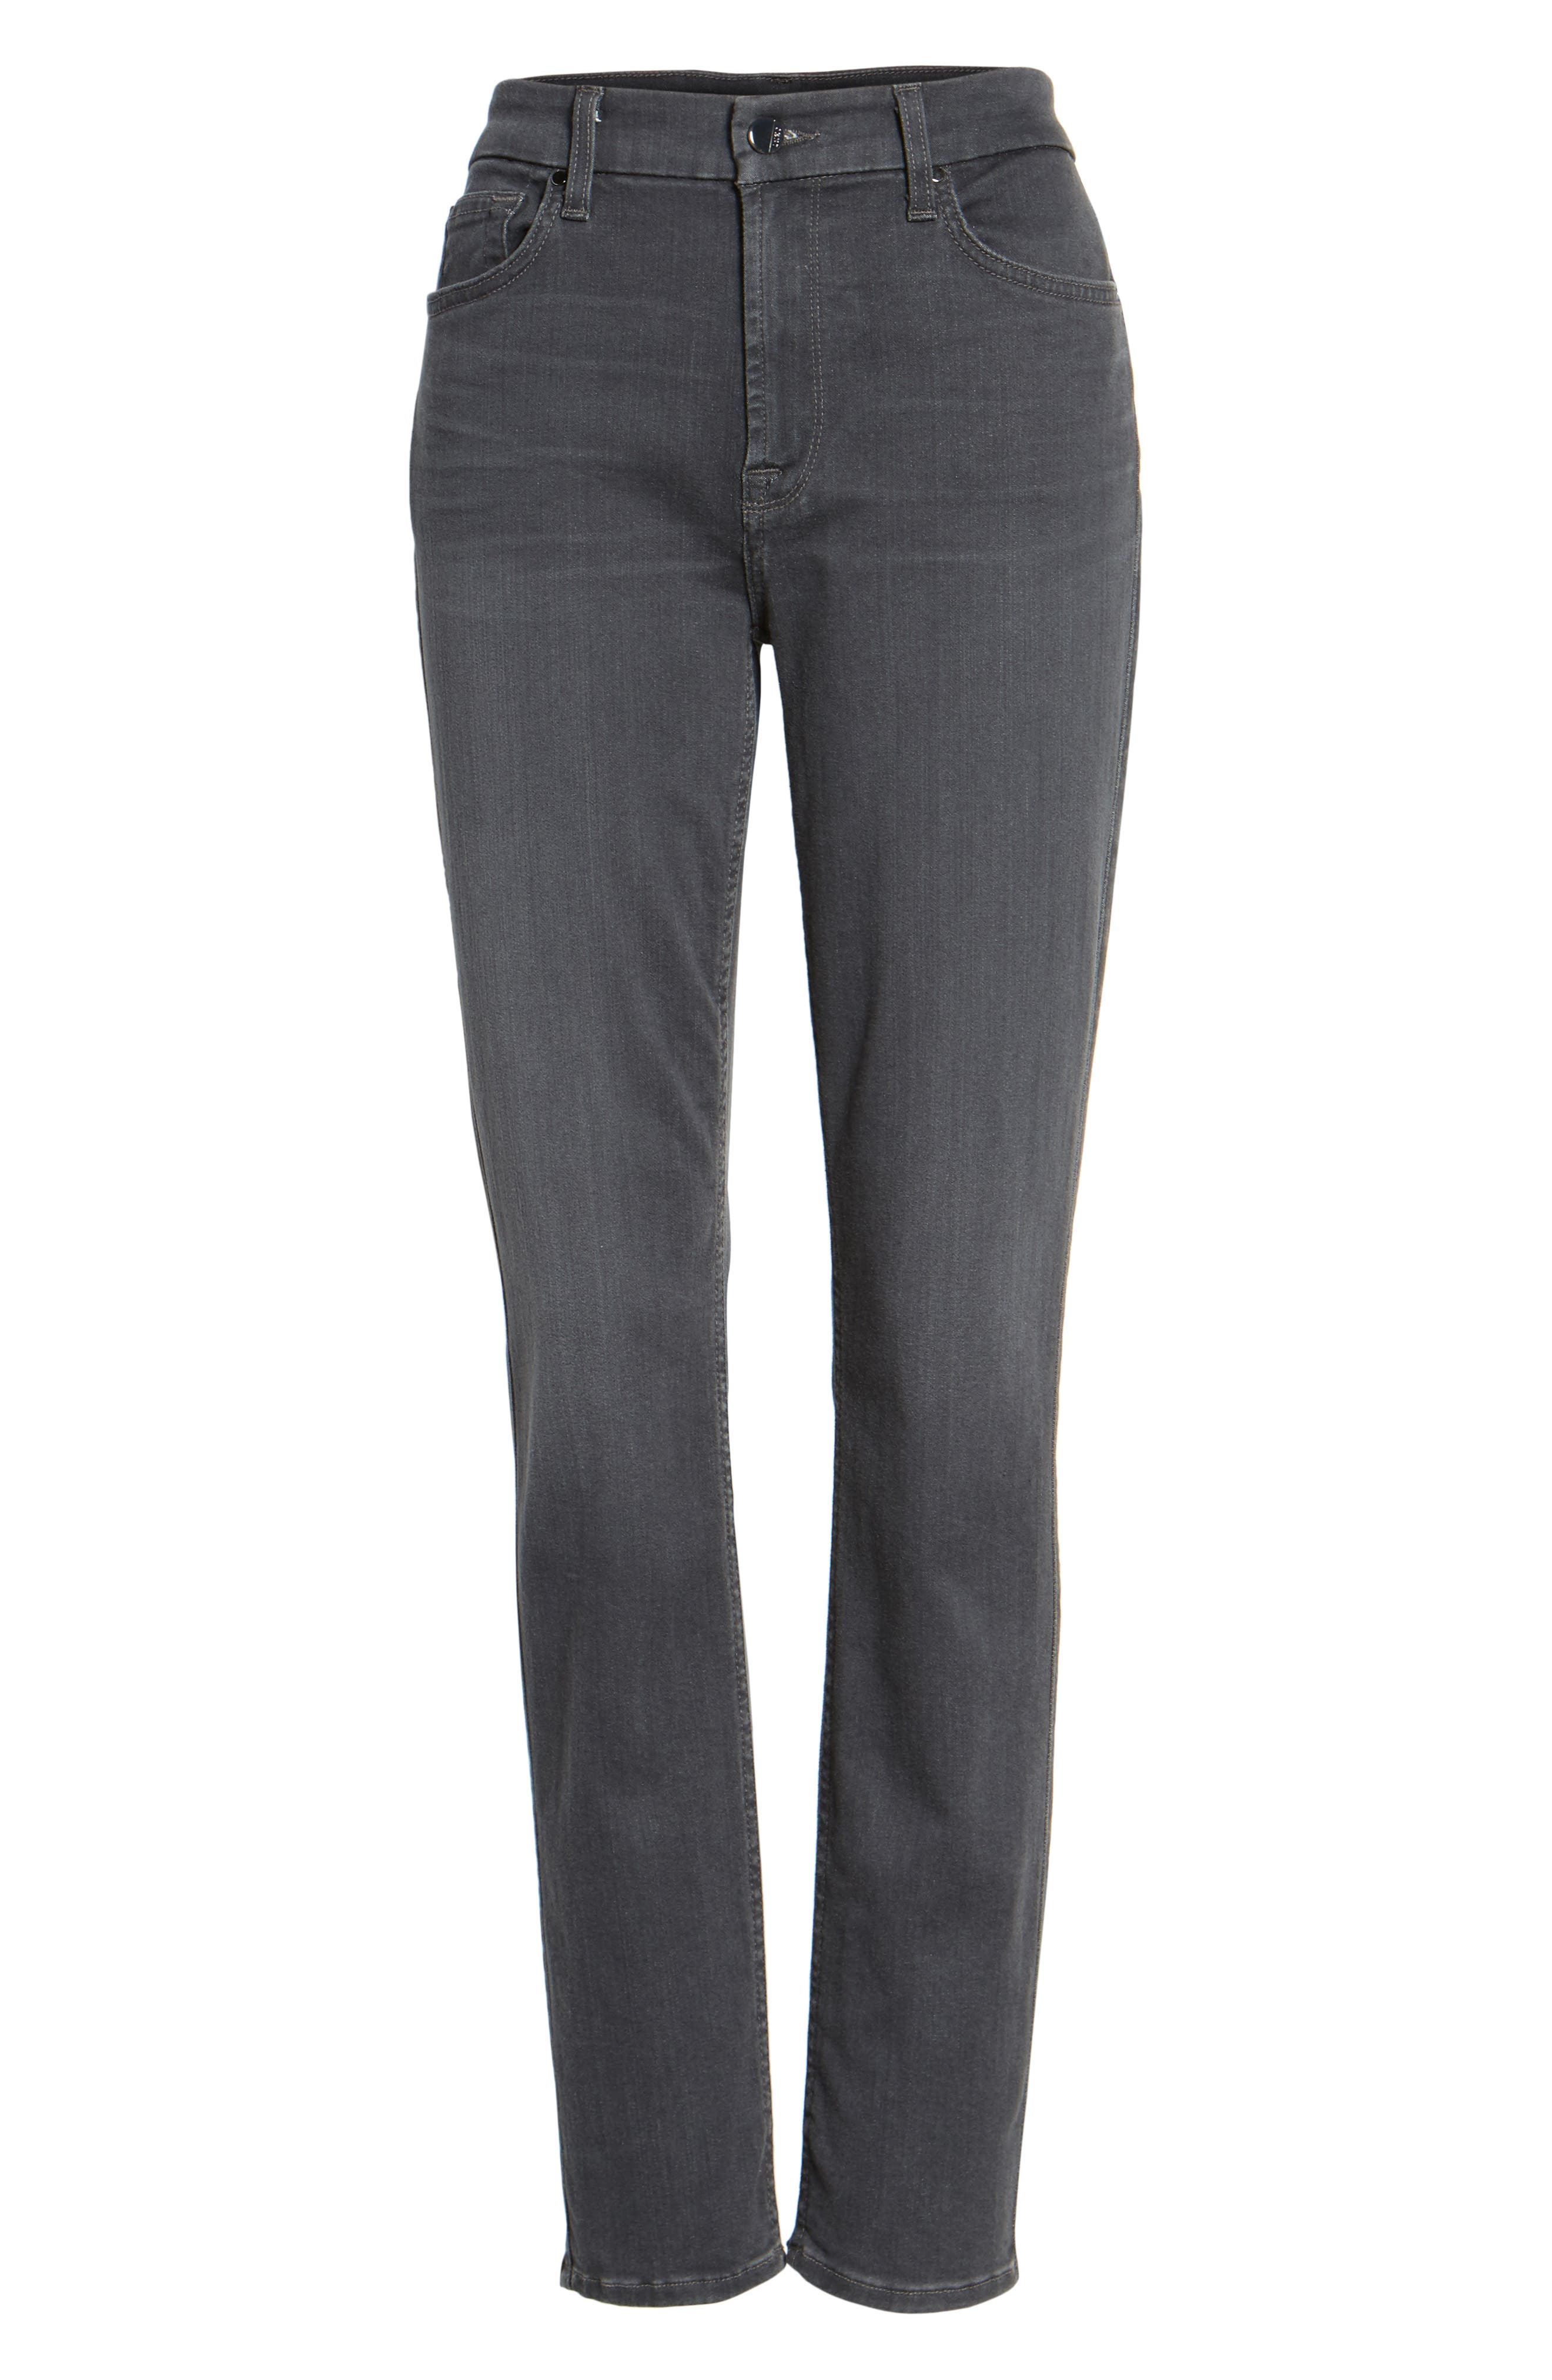 Stretch Skinny Jeans,                             Alternate thumbnail 7, color,                             CLEAN GREY